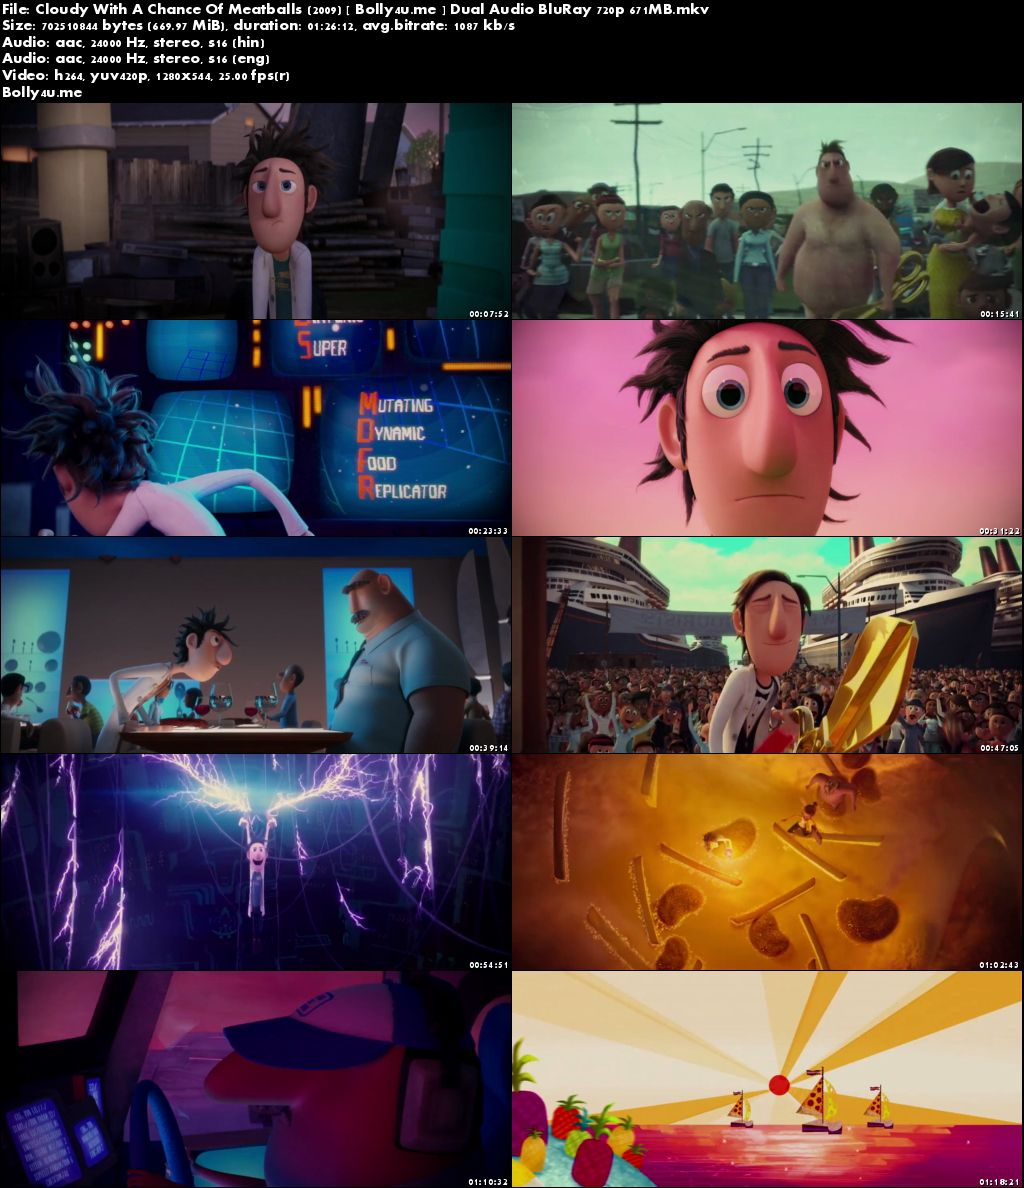 Cloudy With A Chance Of Meatballs 2009 BRRip 650MB Hindi Dual Audio 720p Download